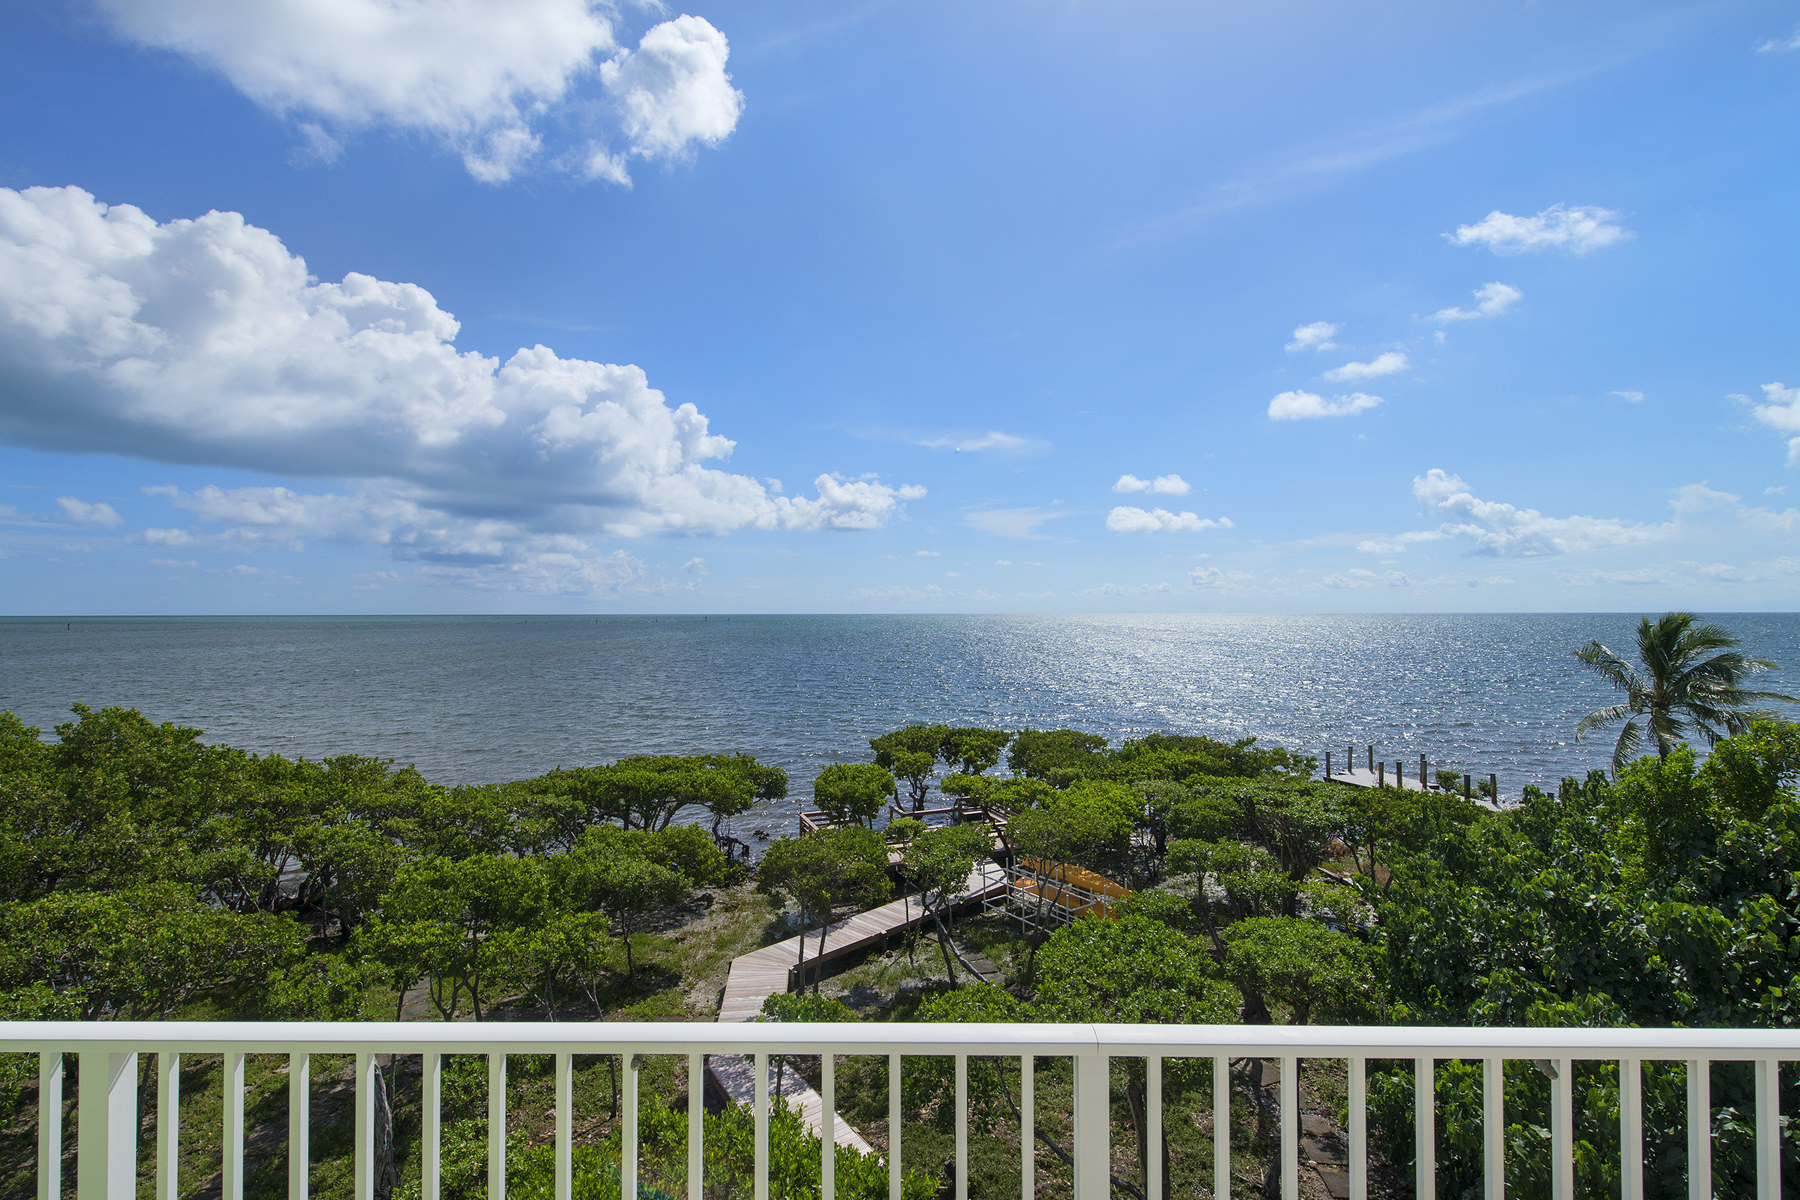 Single Family Home for Sale at Ocean Front Home at Ocean Reef 15 Sunrise Cay Drive, Ocean Reef Community, Key Largo, Florida, 33037 United States